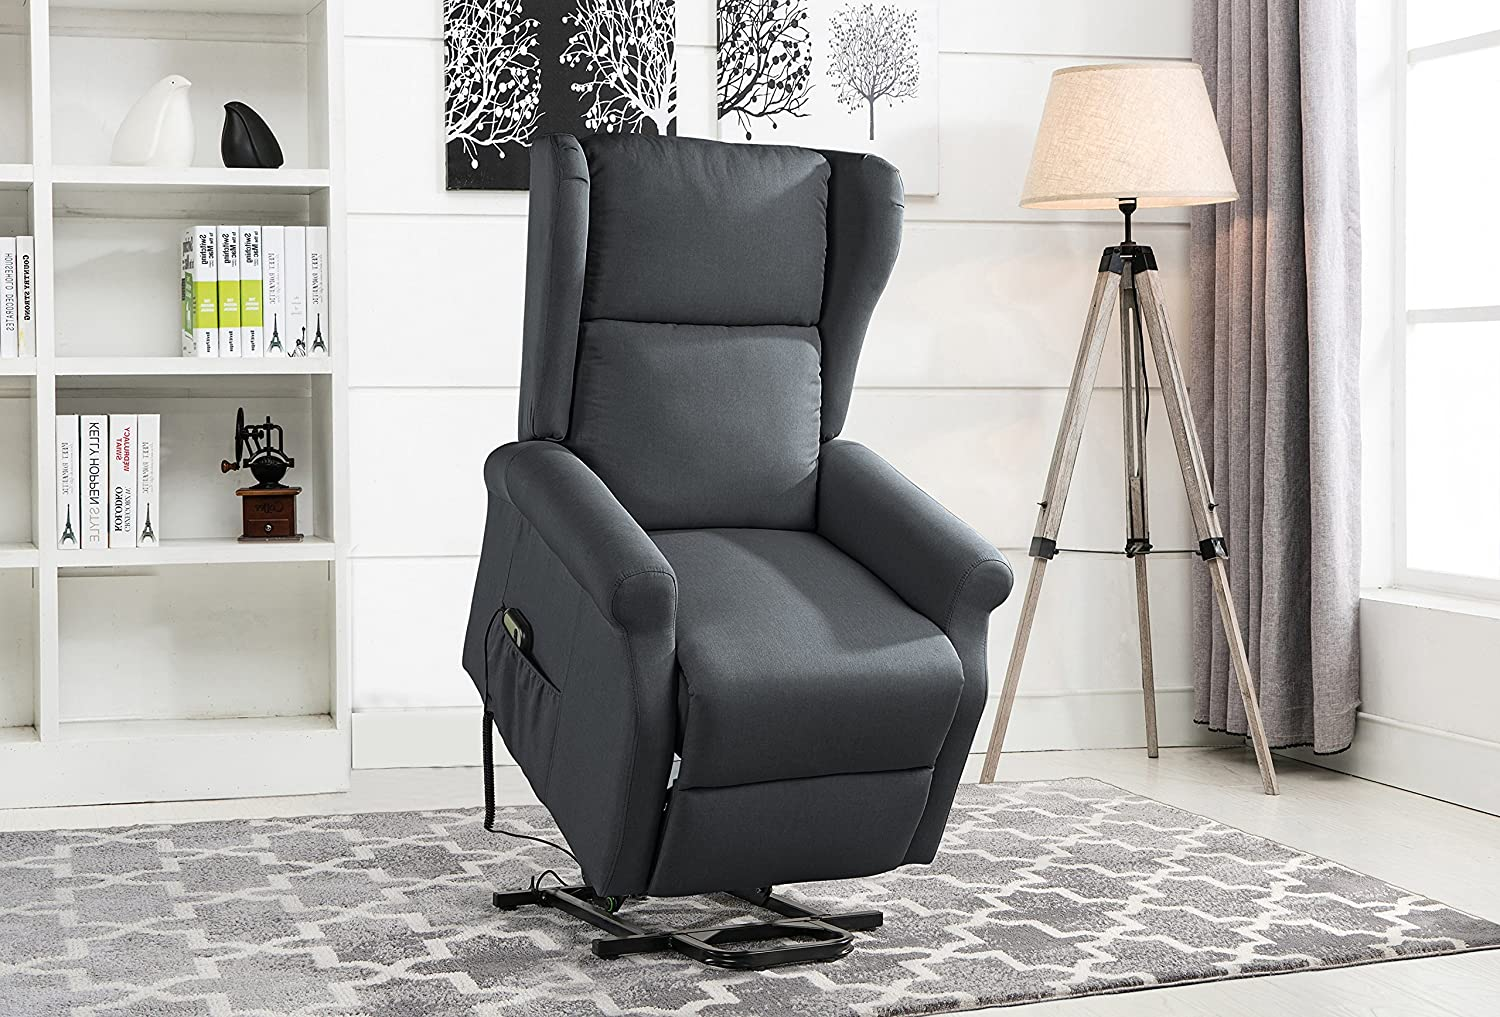 Power Recliner Chair, Lift Chairs, Linen Living Room Reclining Armchair (Dark Brown) Divano Roma Furniture REC39-FB